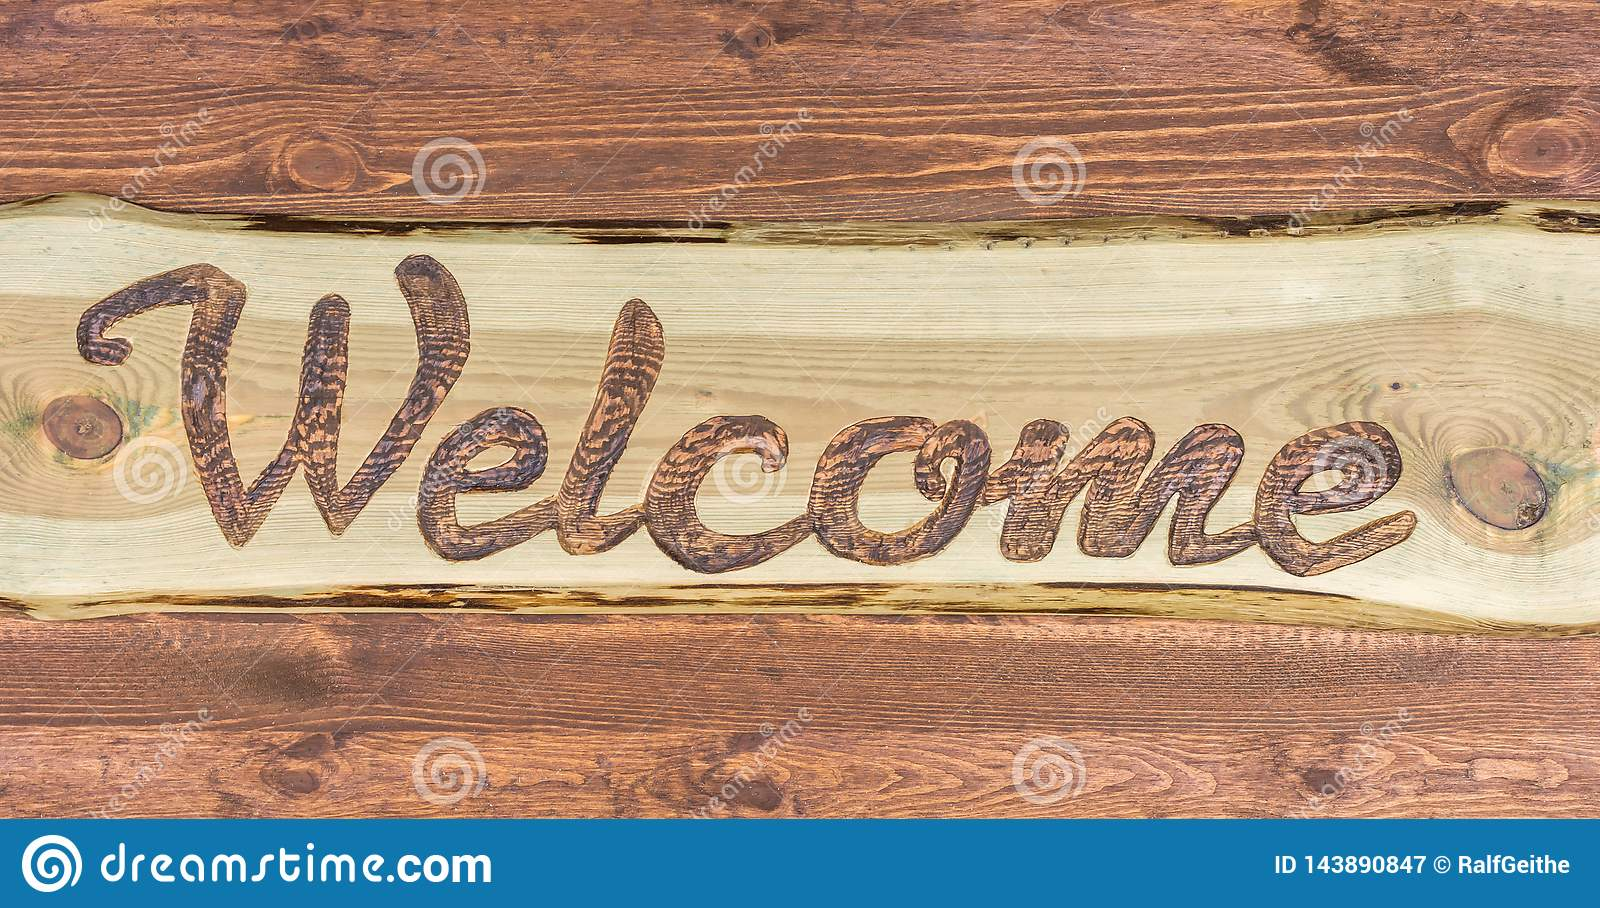 Homemade wooden sign with the english word for welcome